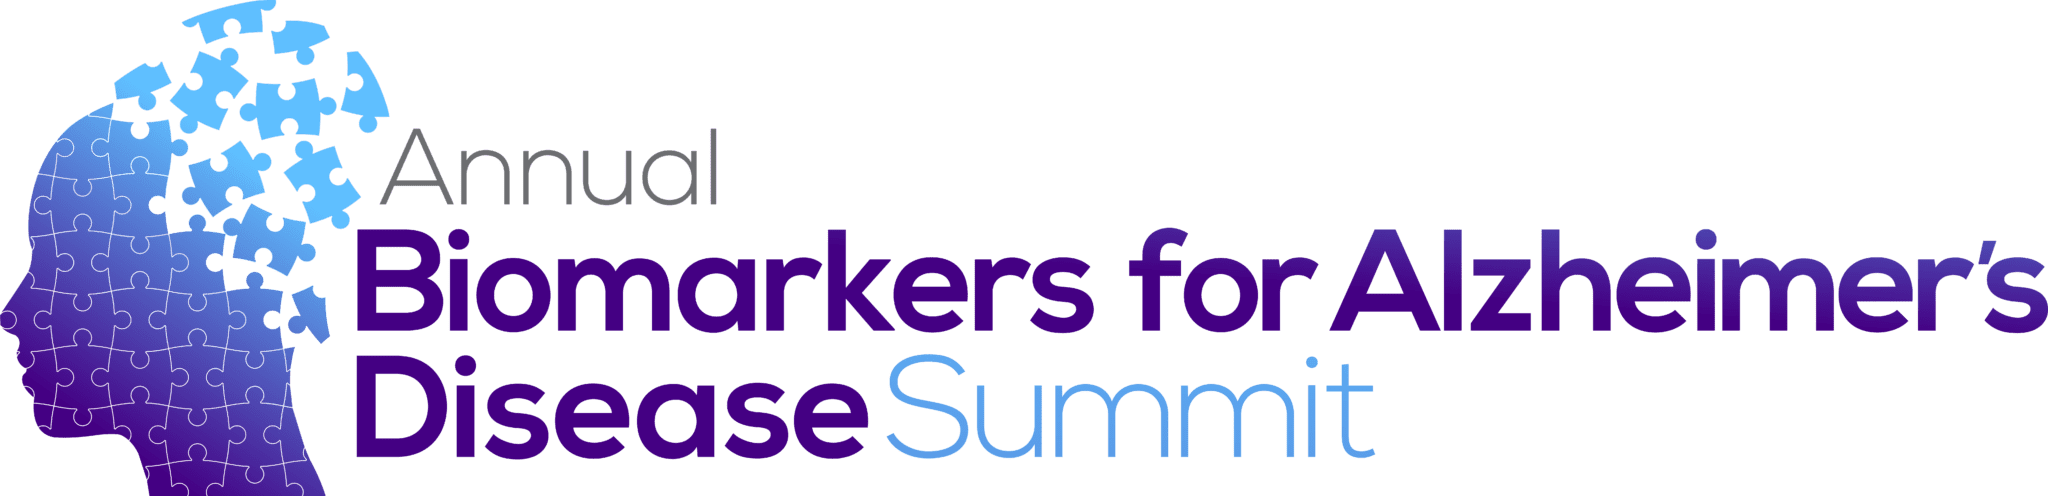 17025-Biomarkers-for-Alzheimers-Disease-Summit-logo